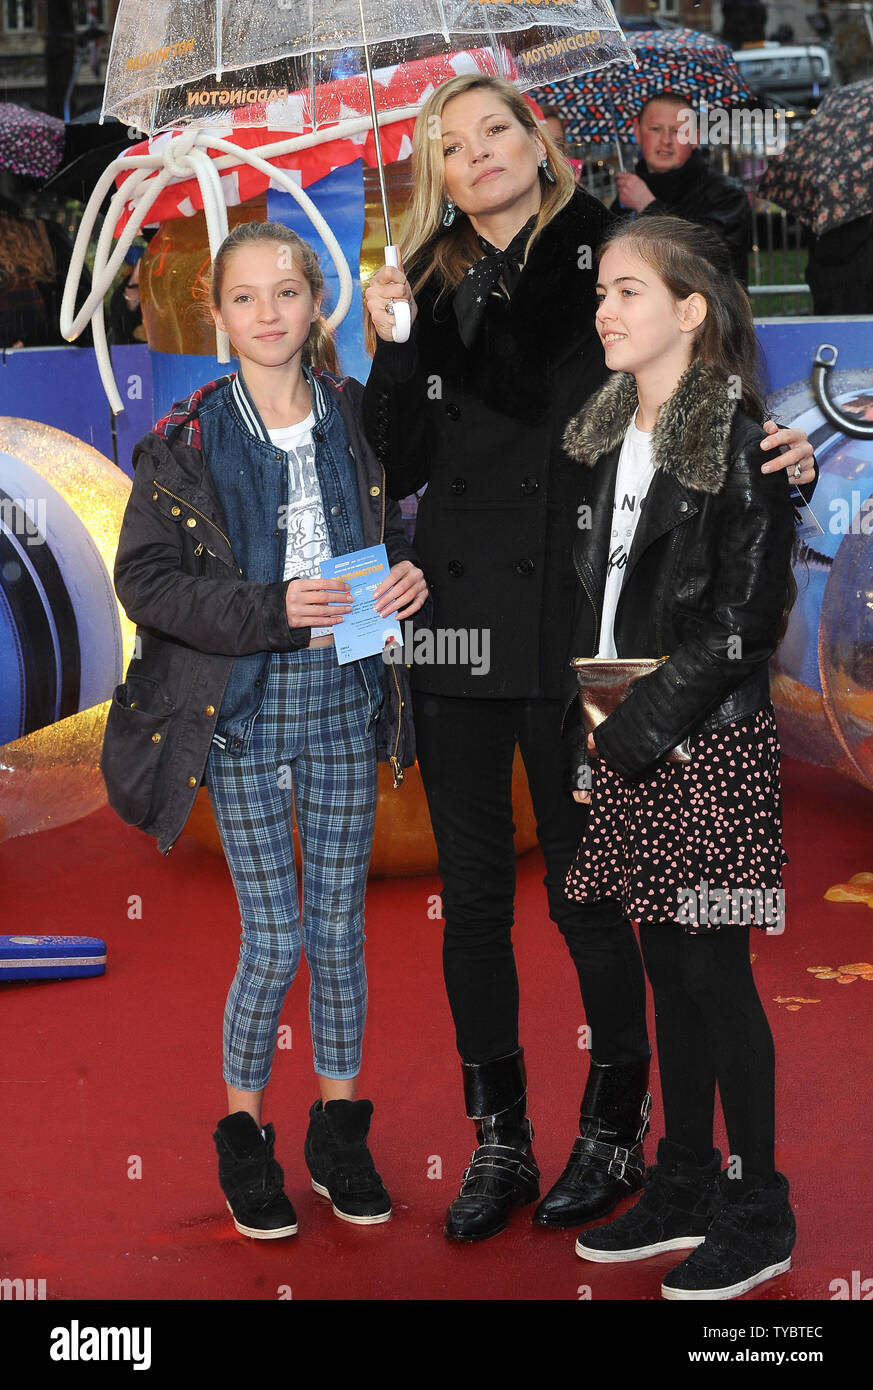 English model Kate Moss and daughter Lila Grace attend the World Premiere of 'Paddington' at Odeon Leicester Square in London on November 23, 2014.     UPI/Paul Treadway - Stock Image